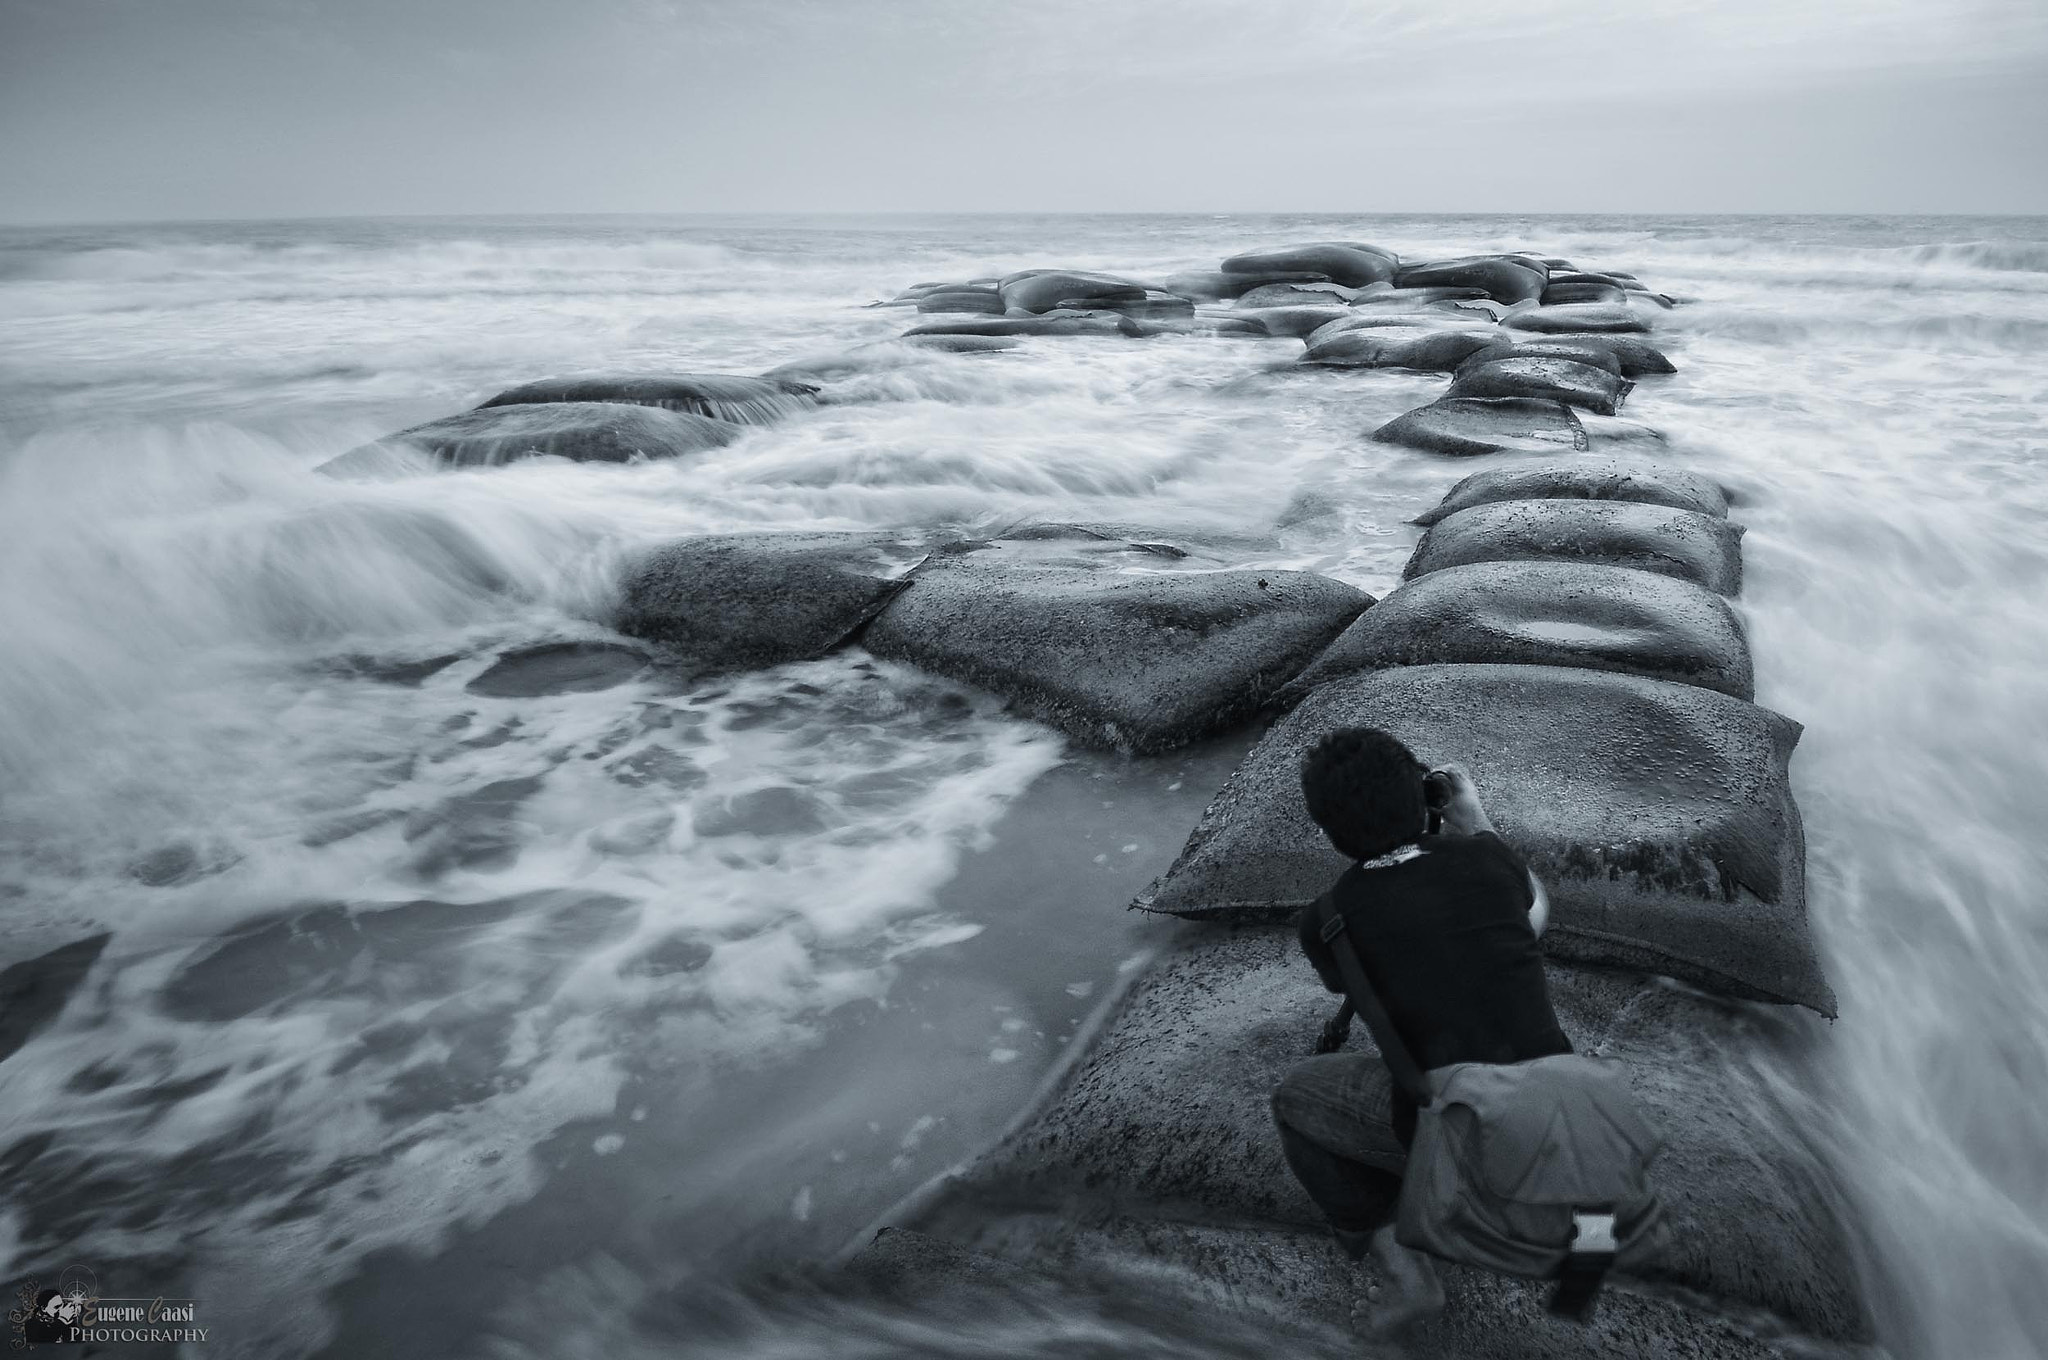 Photograph IN AWE OF THE ROARING TIDE by Eugene Caasi on 500px